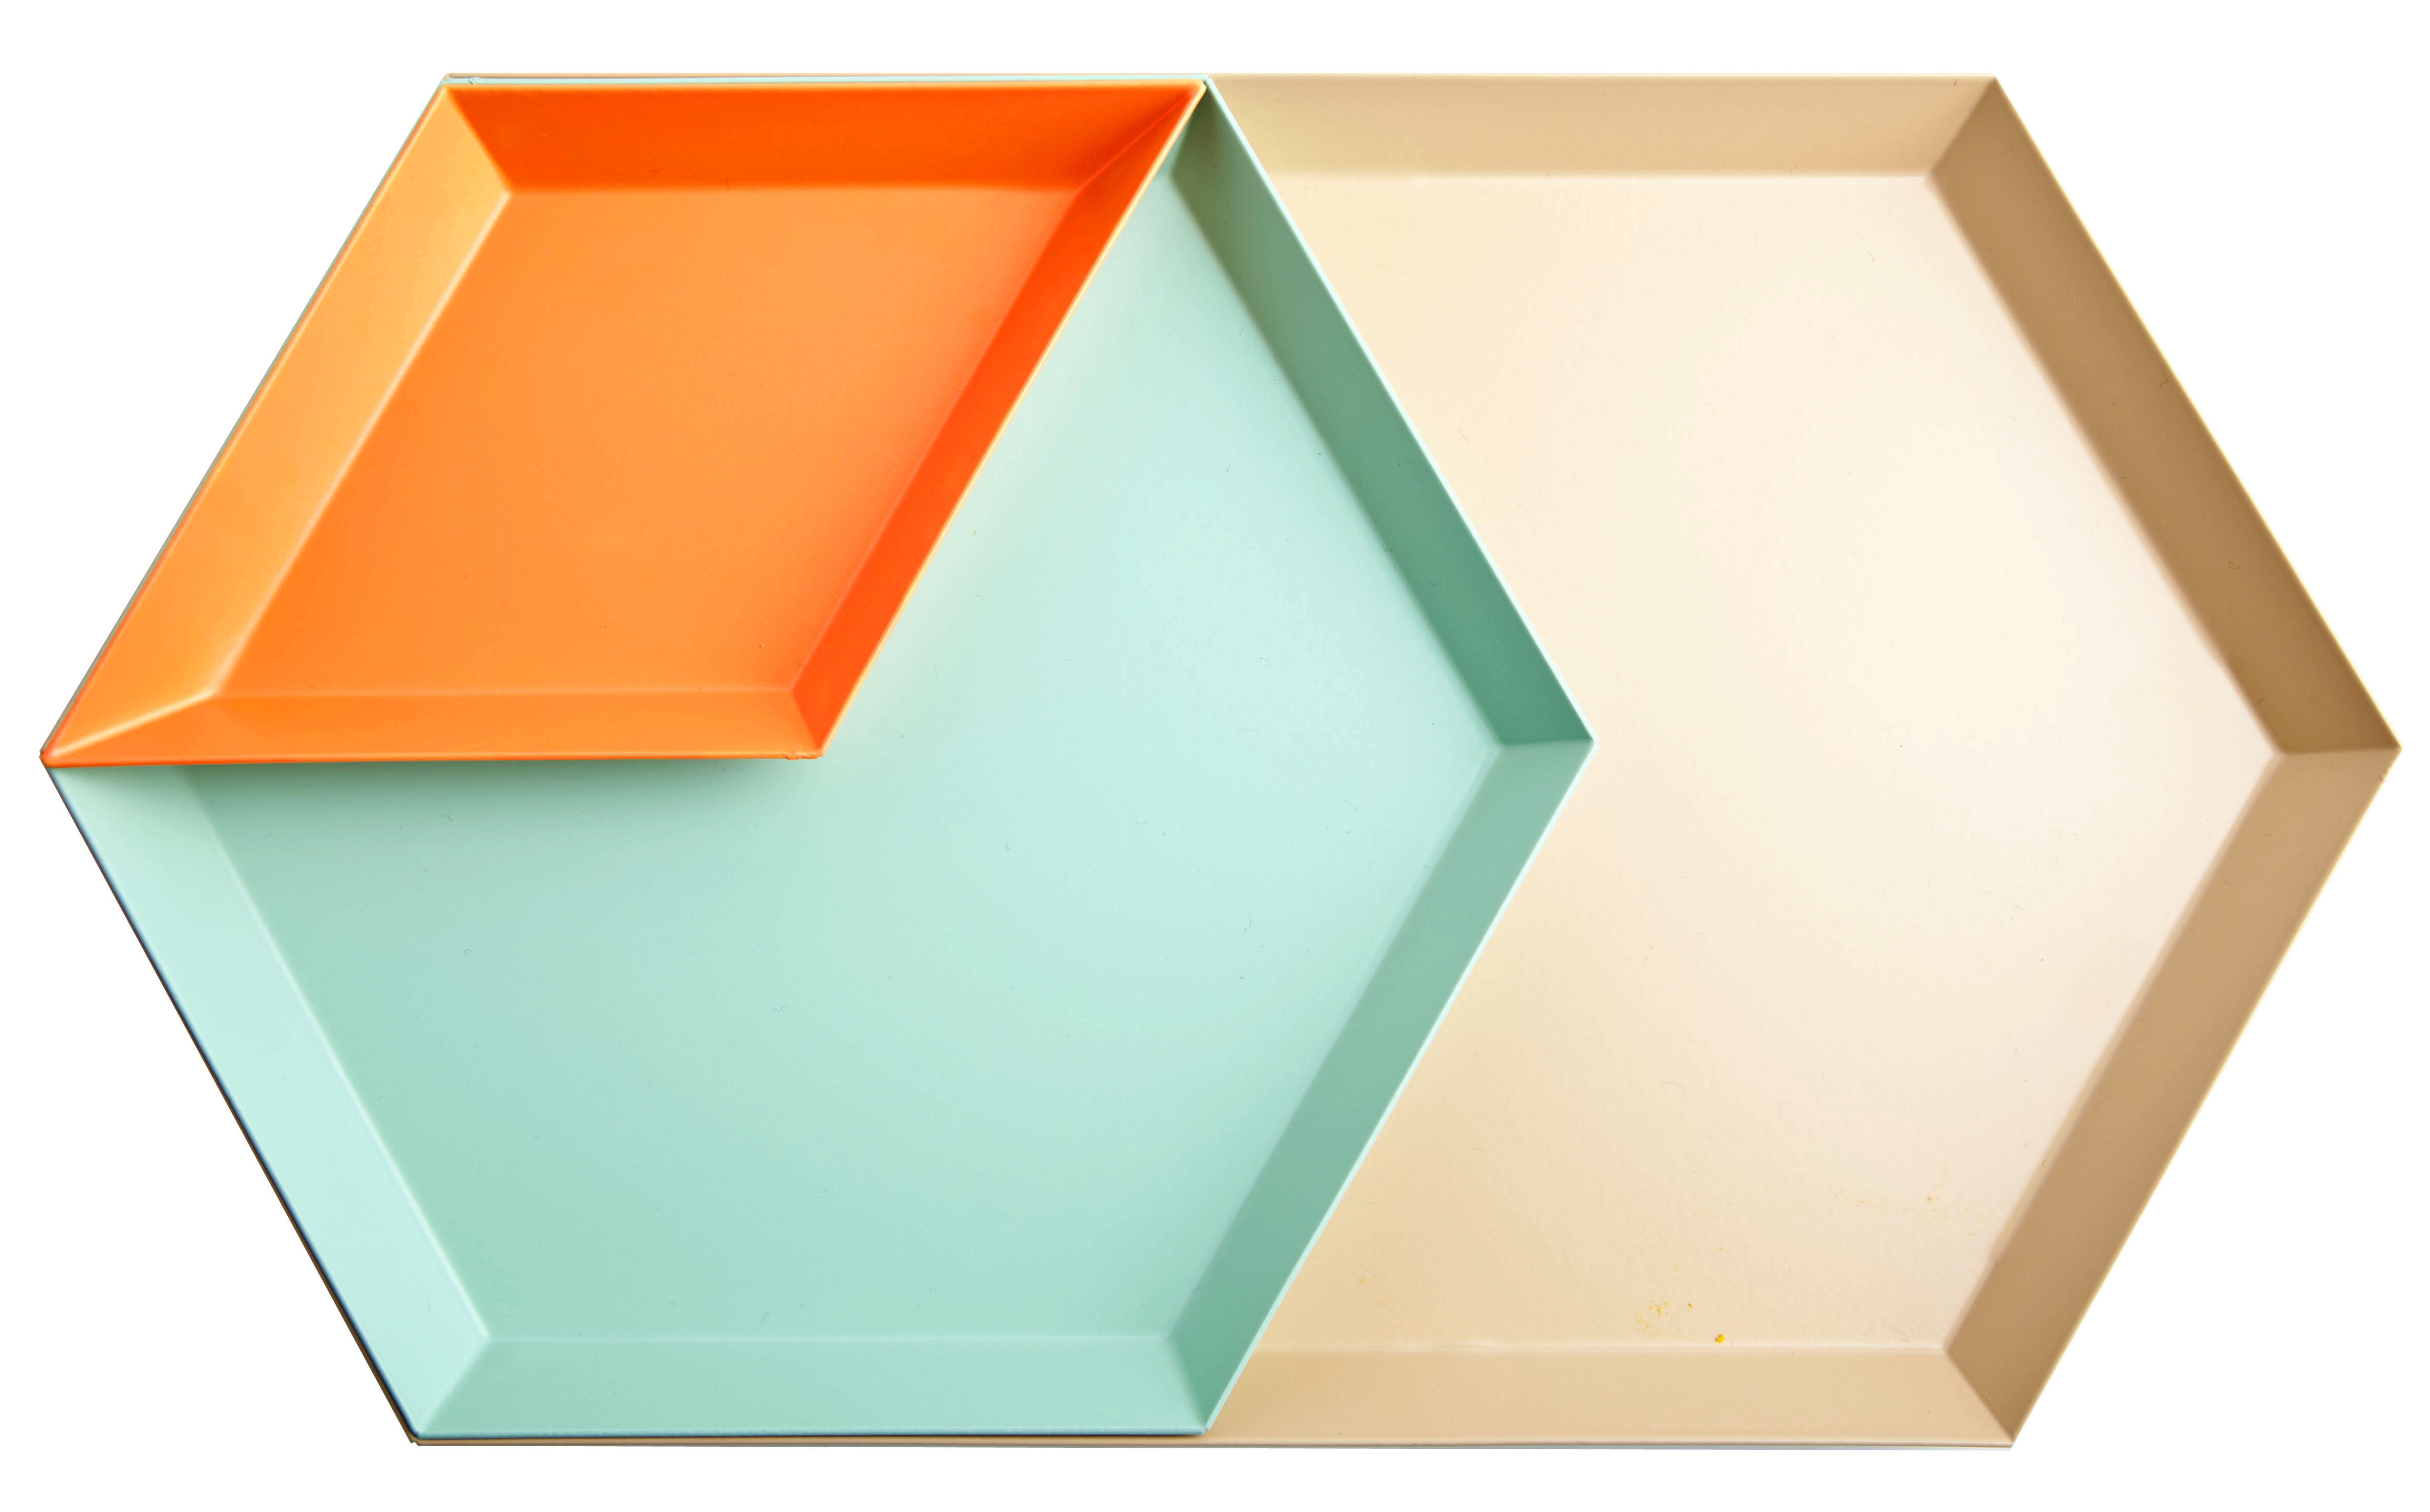 Tableware - Trays - Kaleido Tray by Hay - Apricot, minth, orange - Painted steel